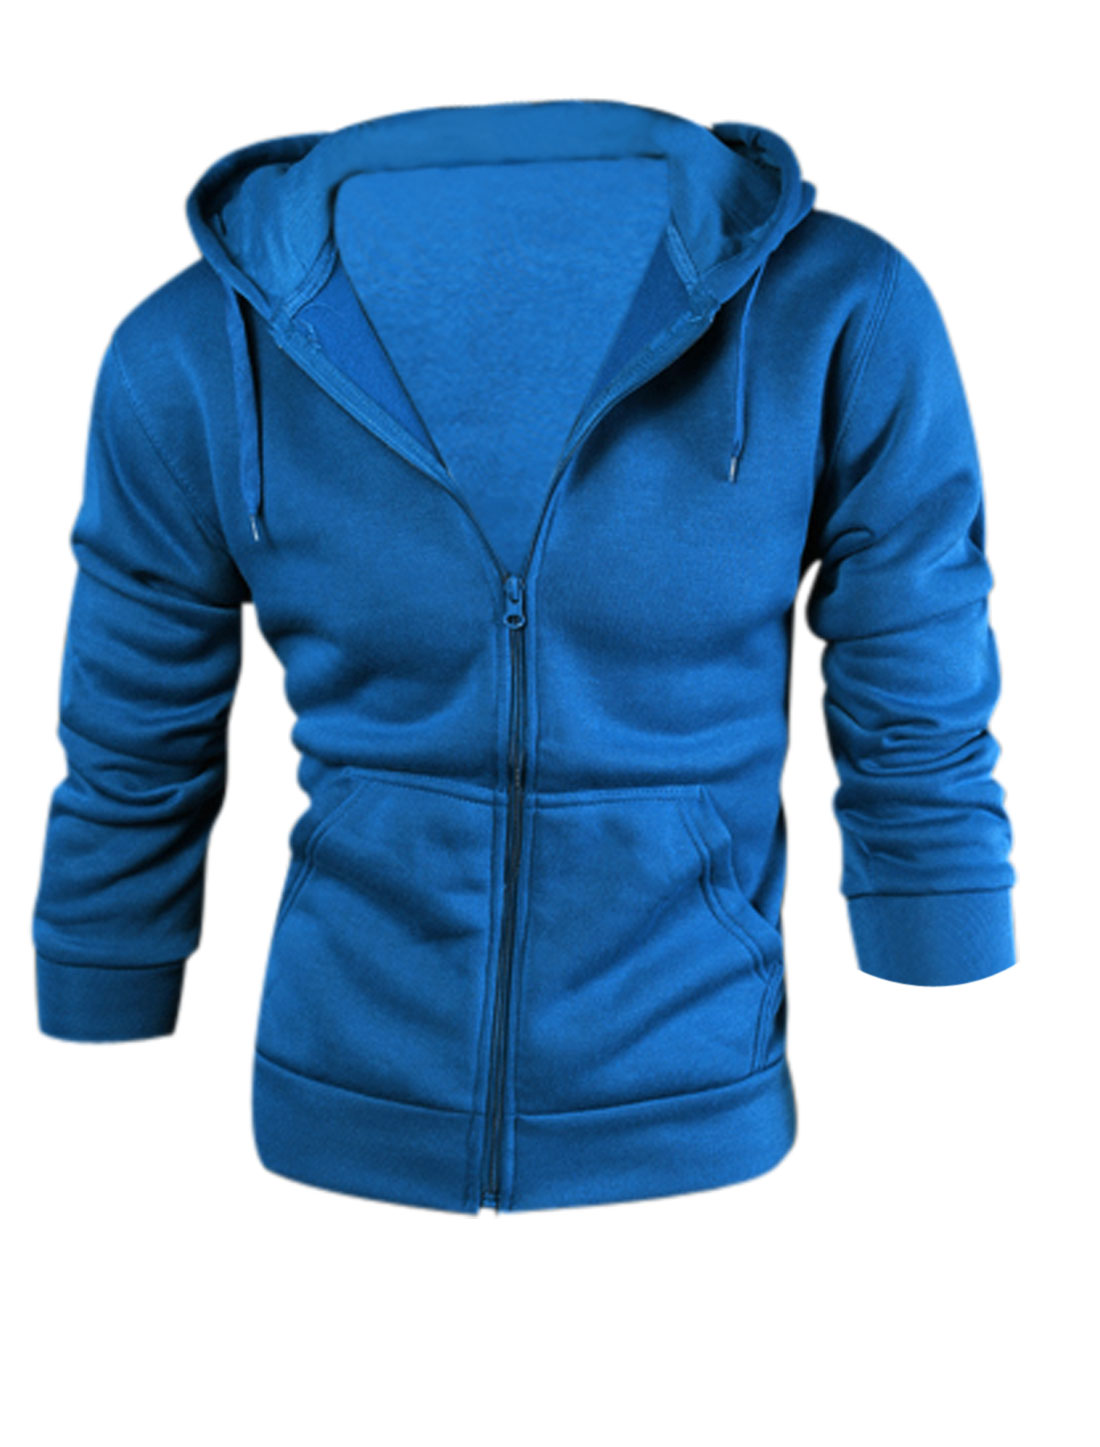 Men Fashion Style Zip Up Casual Hoodie Royal Blue M